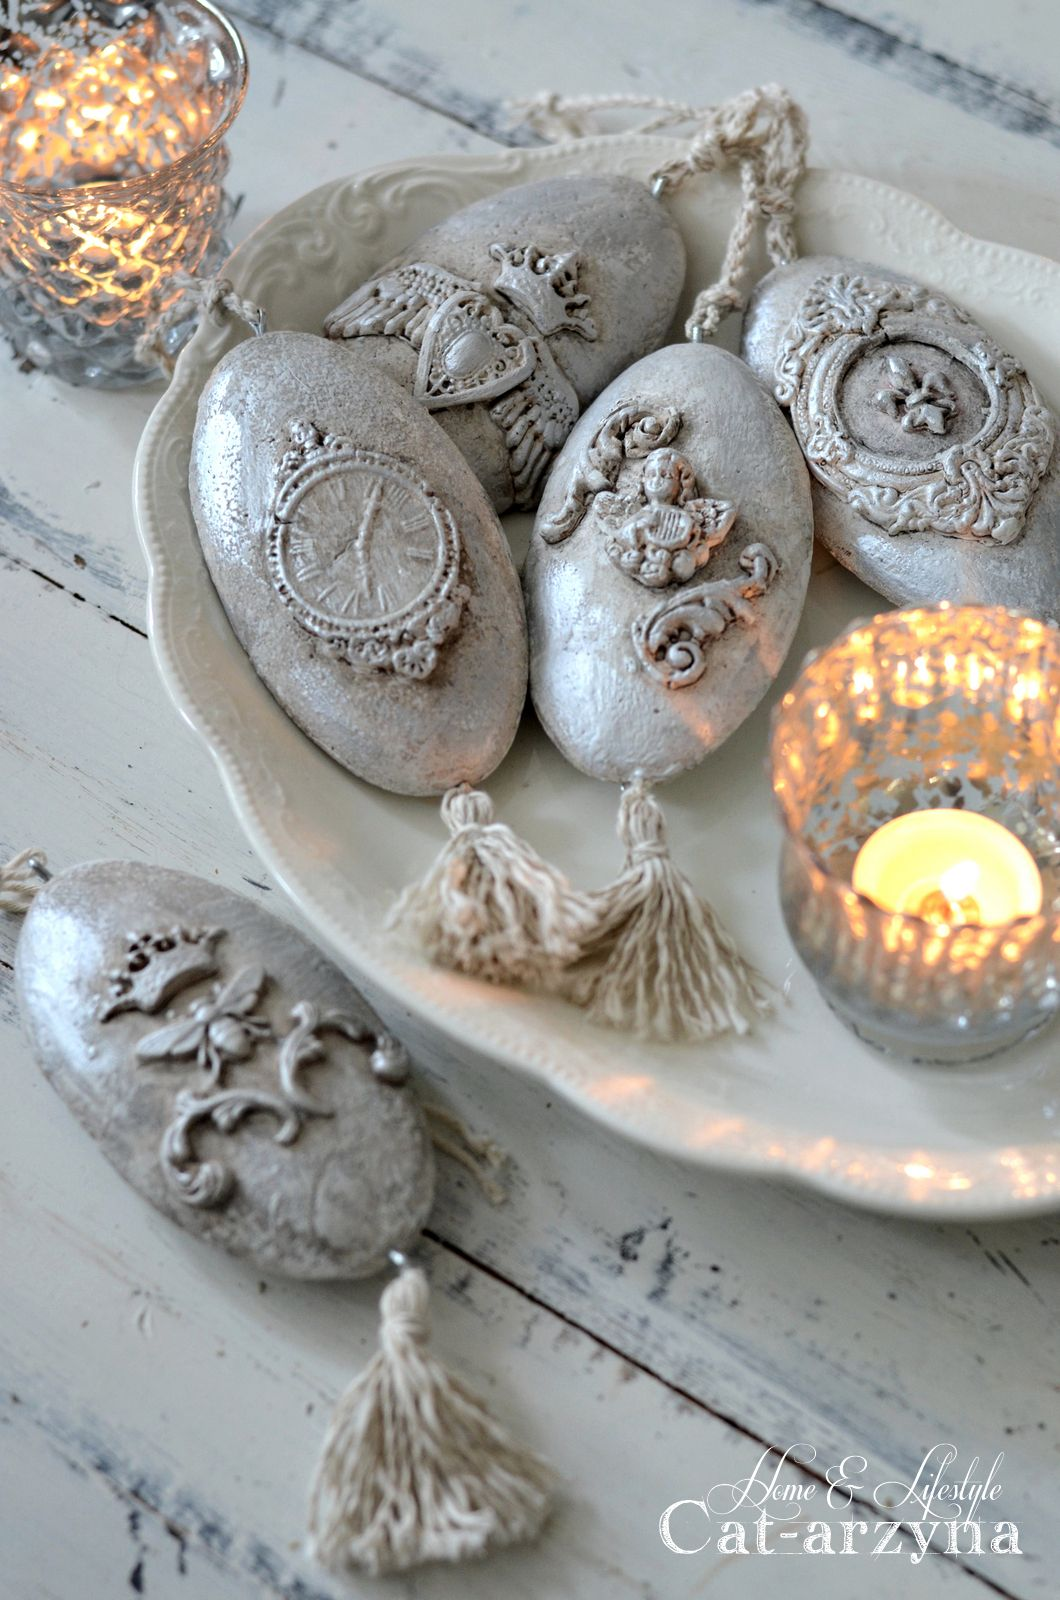 My Christmas Baubles and Ornaments Iron orchid designs